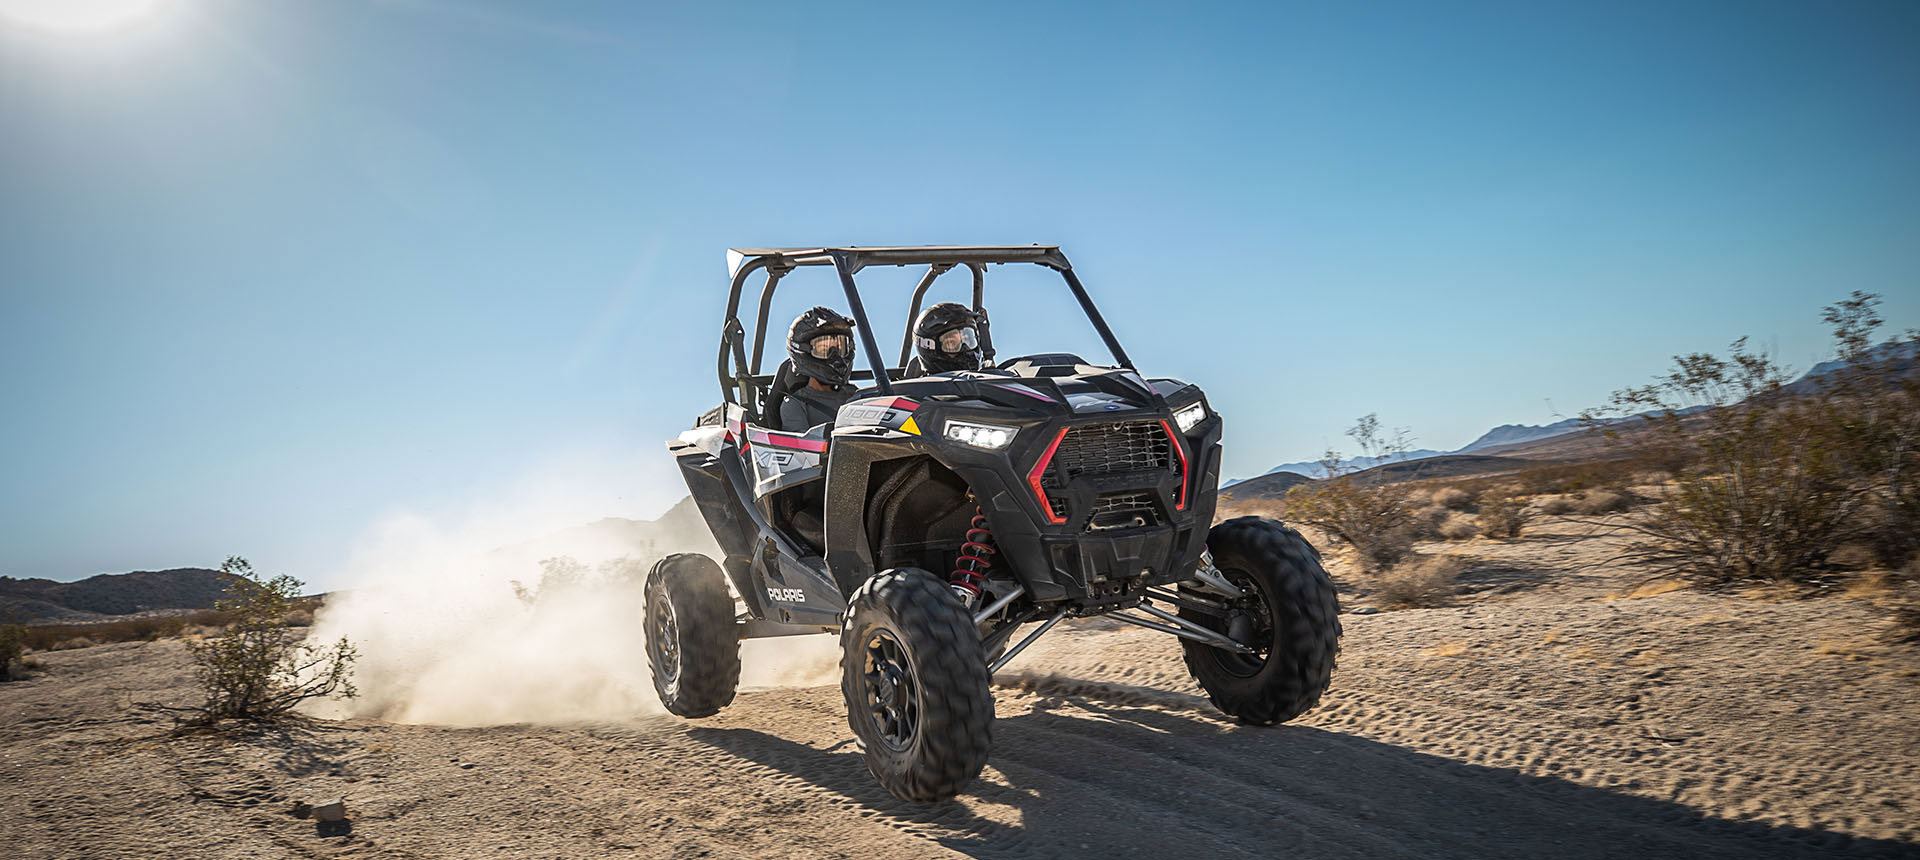 2019 Polaris RZR XP 1000 in Yuba City, California - Photo 8